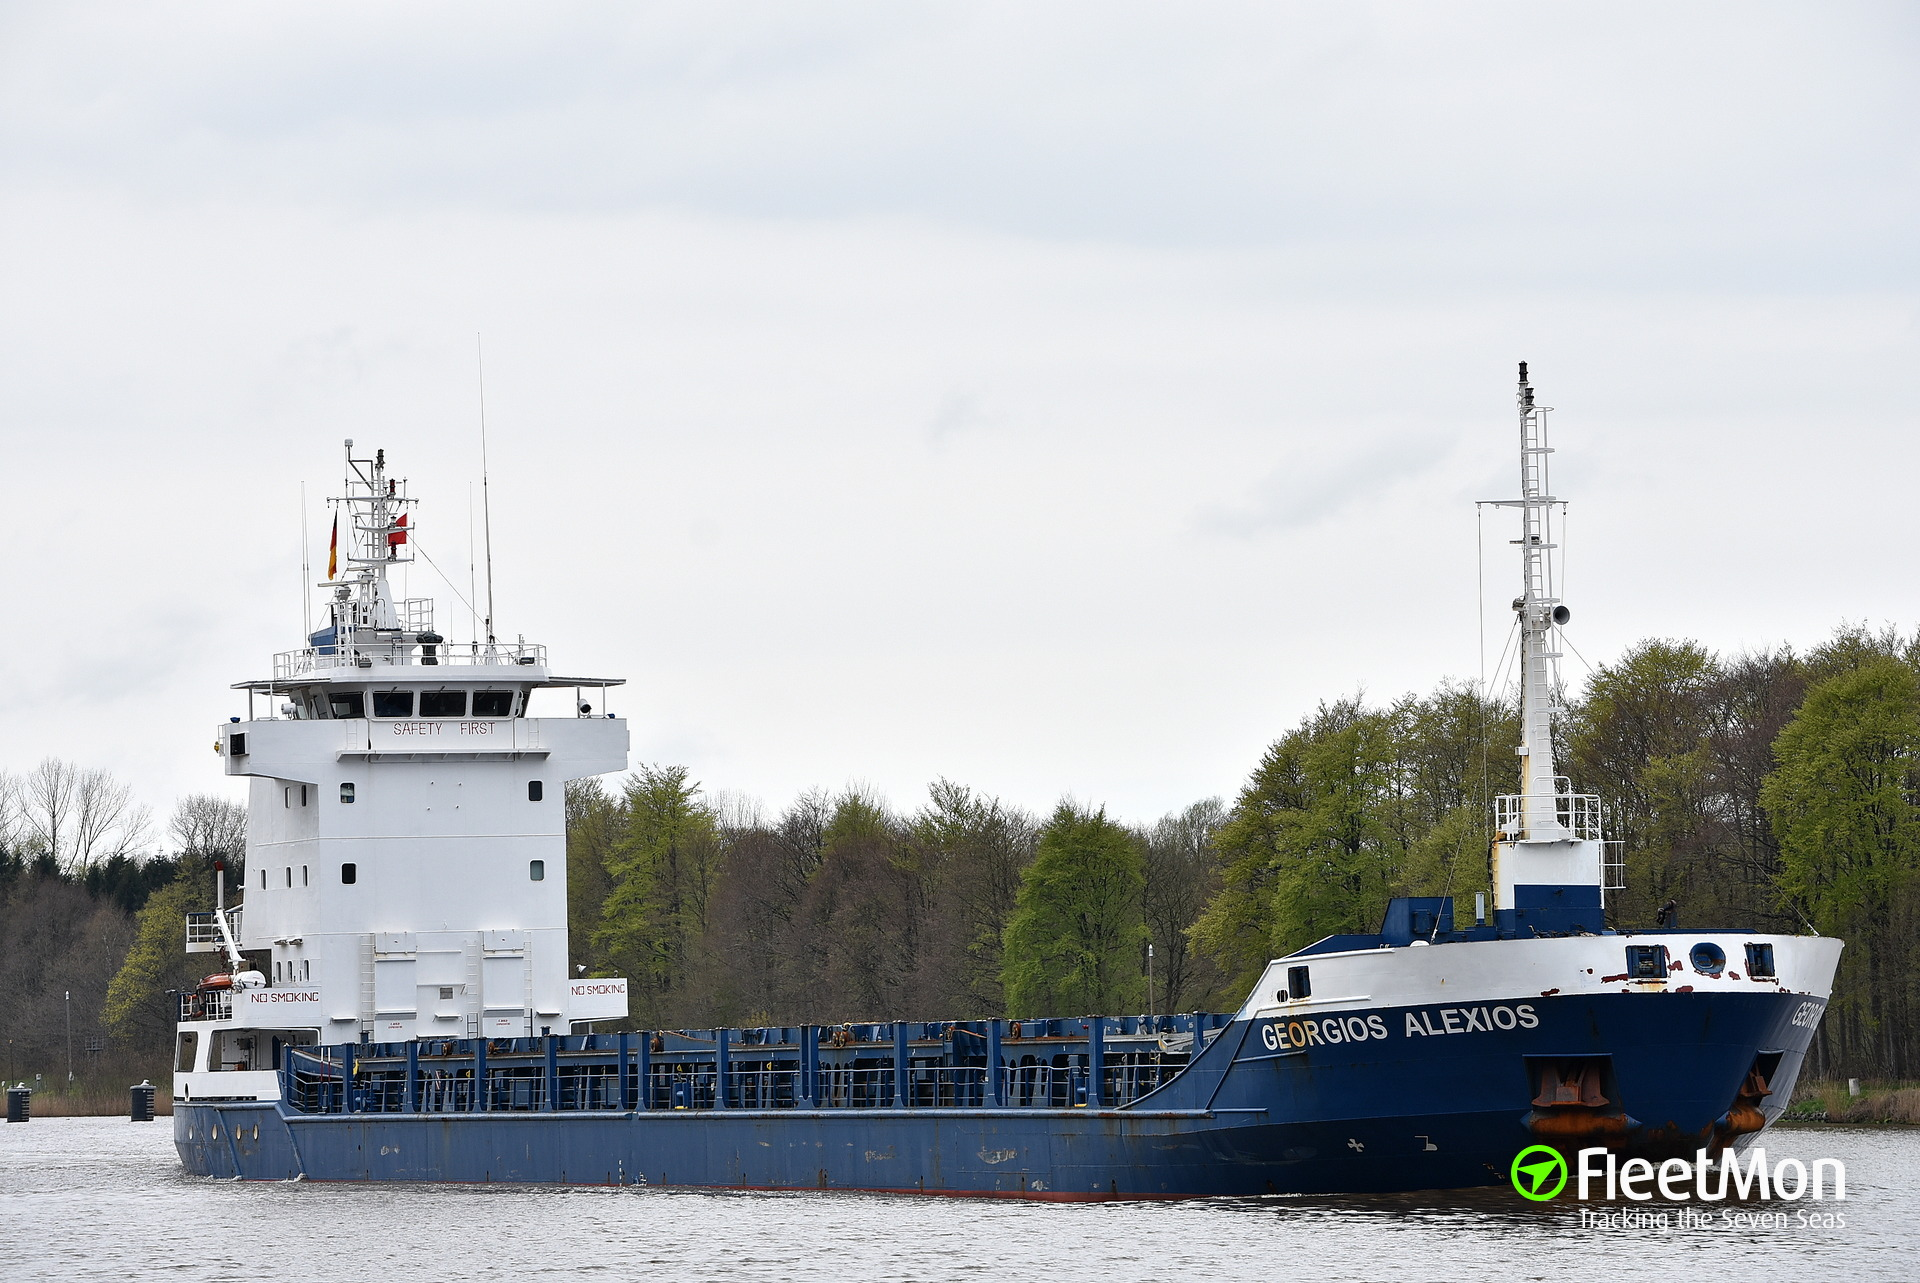 Greek freighter collided with French trawler in UK waters